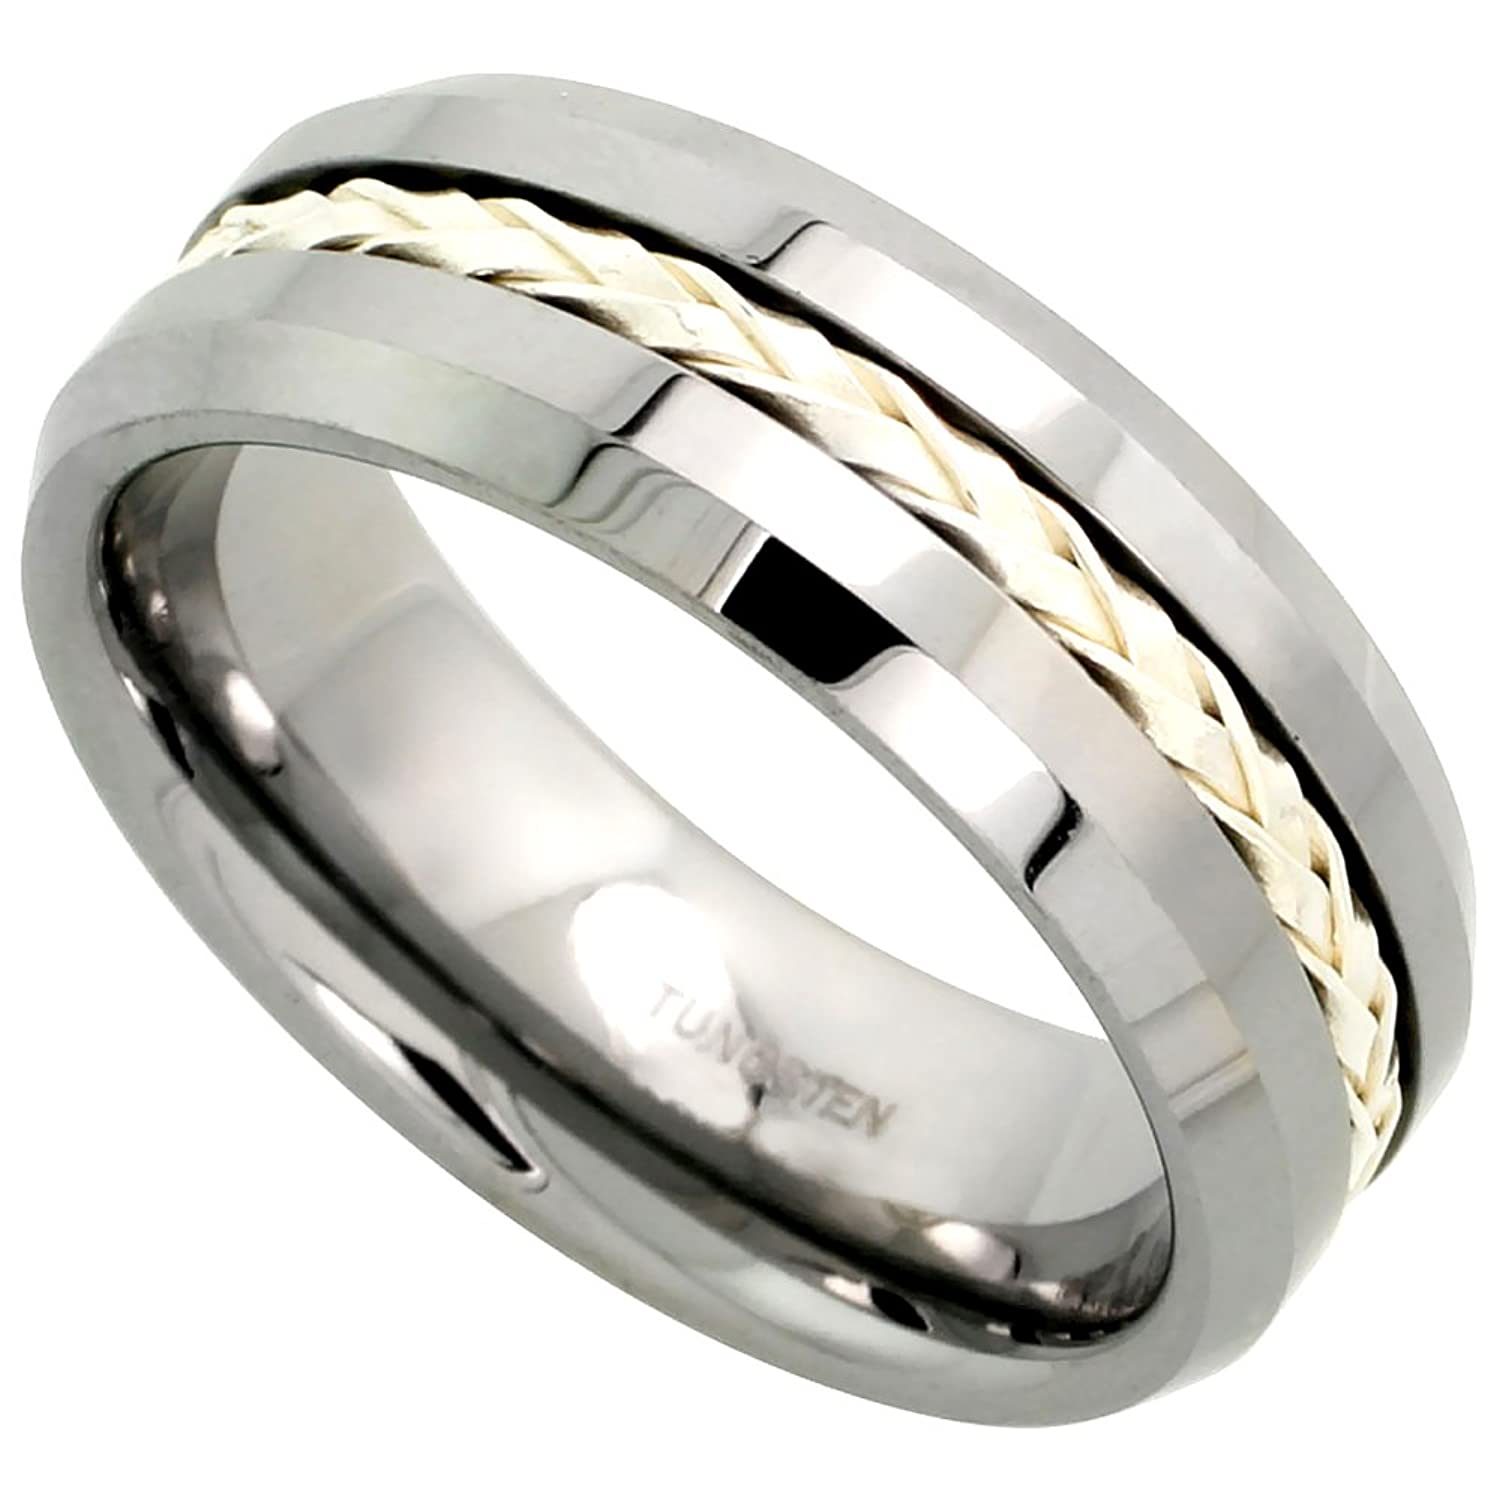 8mm Tungsten 900 TM Wedding Ring Sterling Silver Rope Inlay